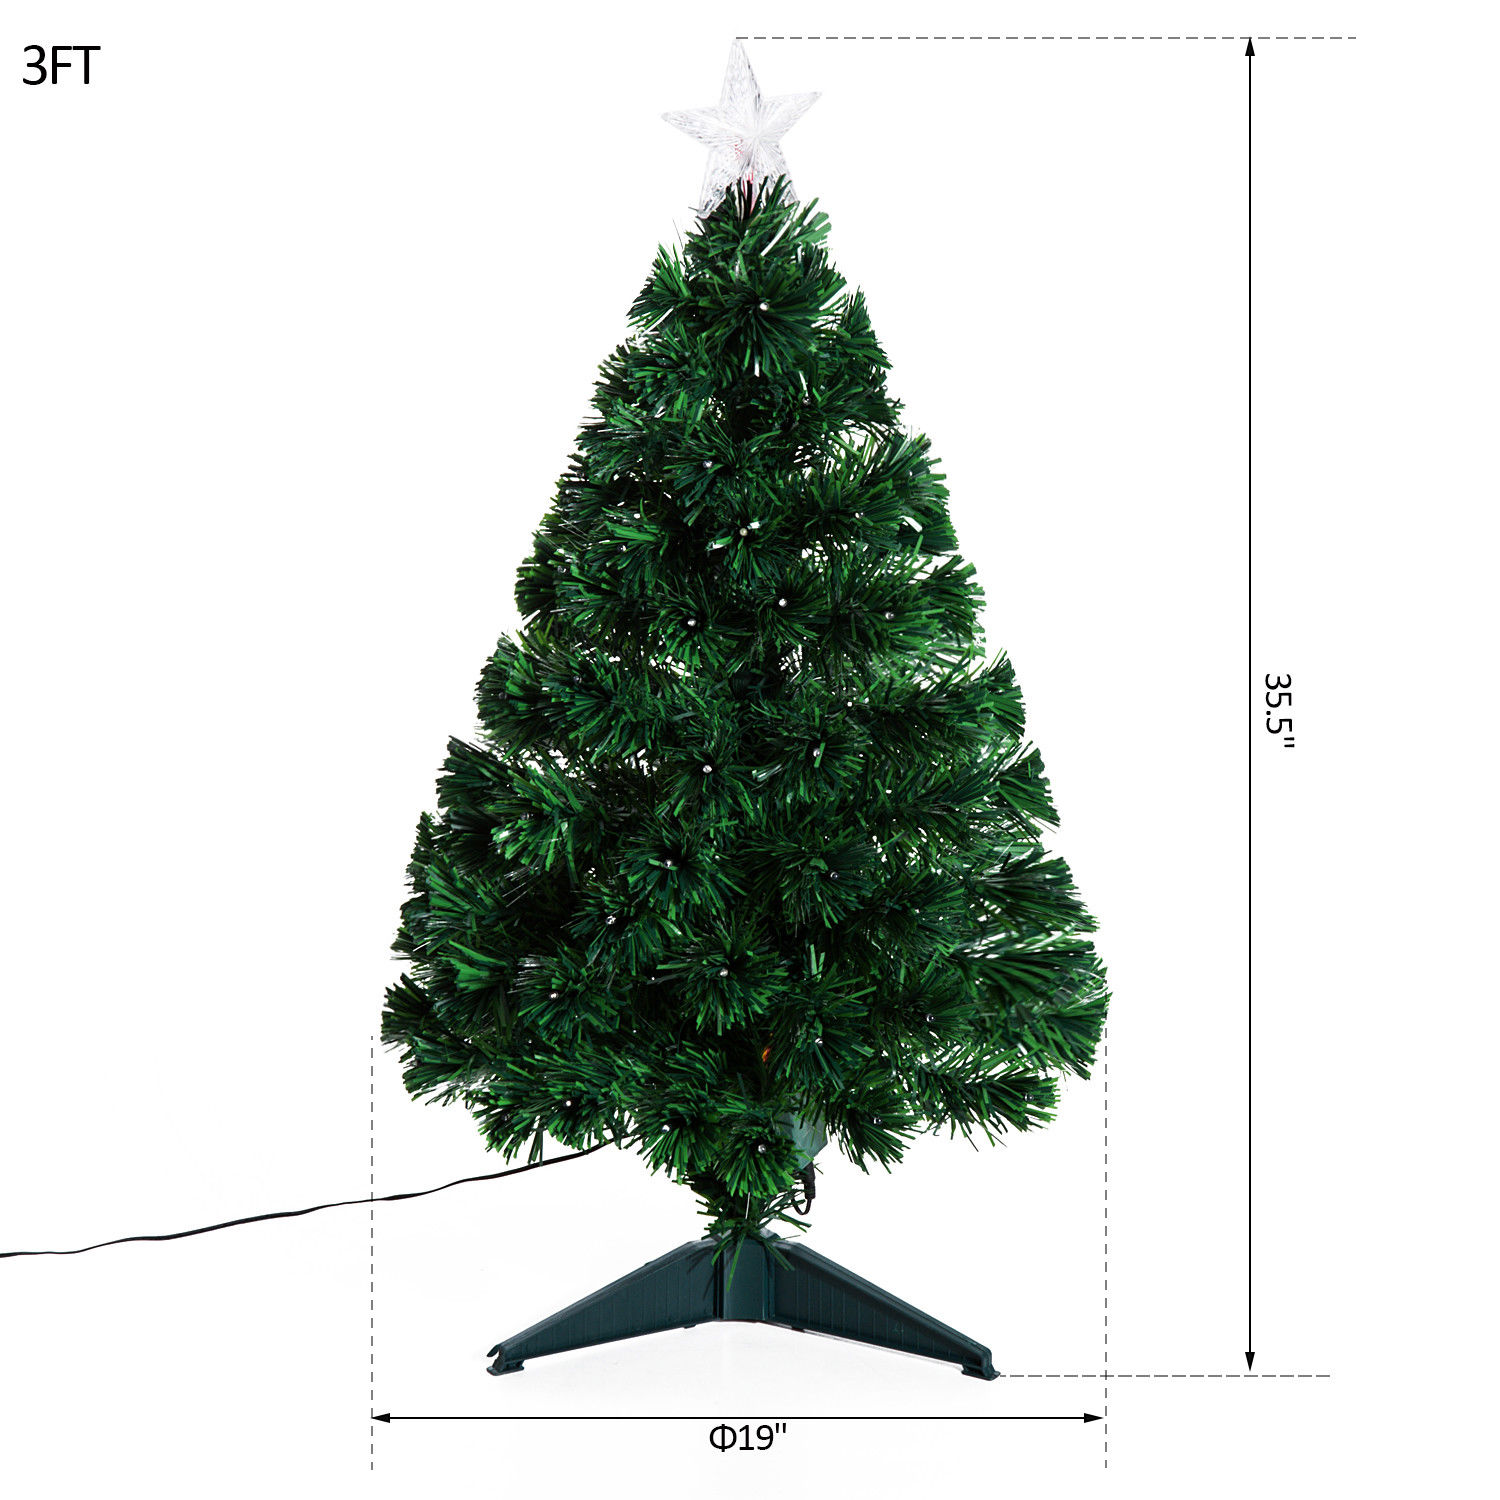 3' Artificial Fiber Optic / LED Light Up Christmas Tree w/ 8 Light Settings and Stand 3